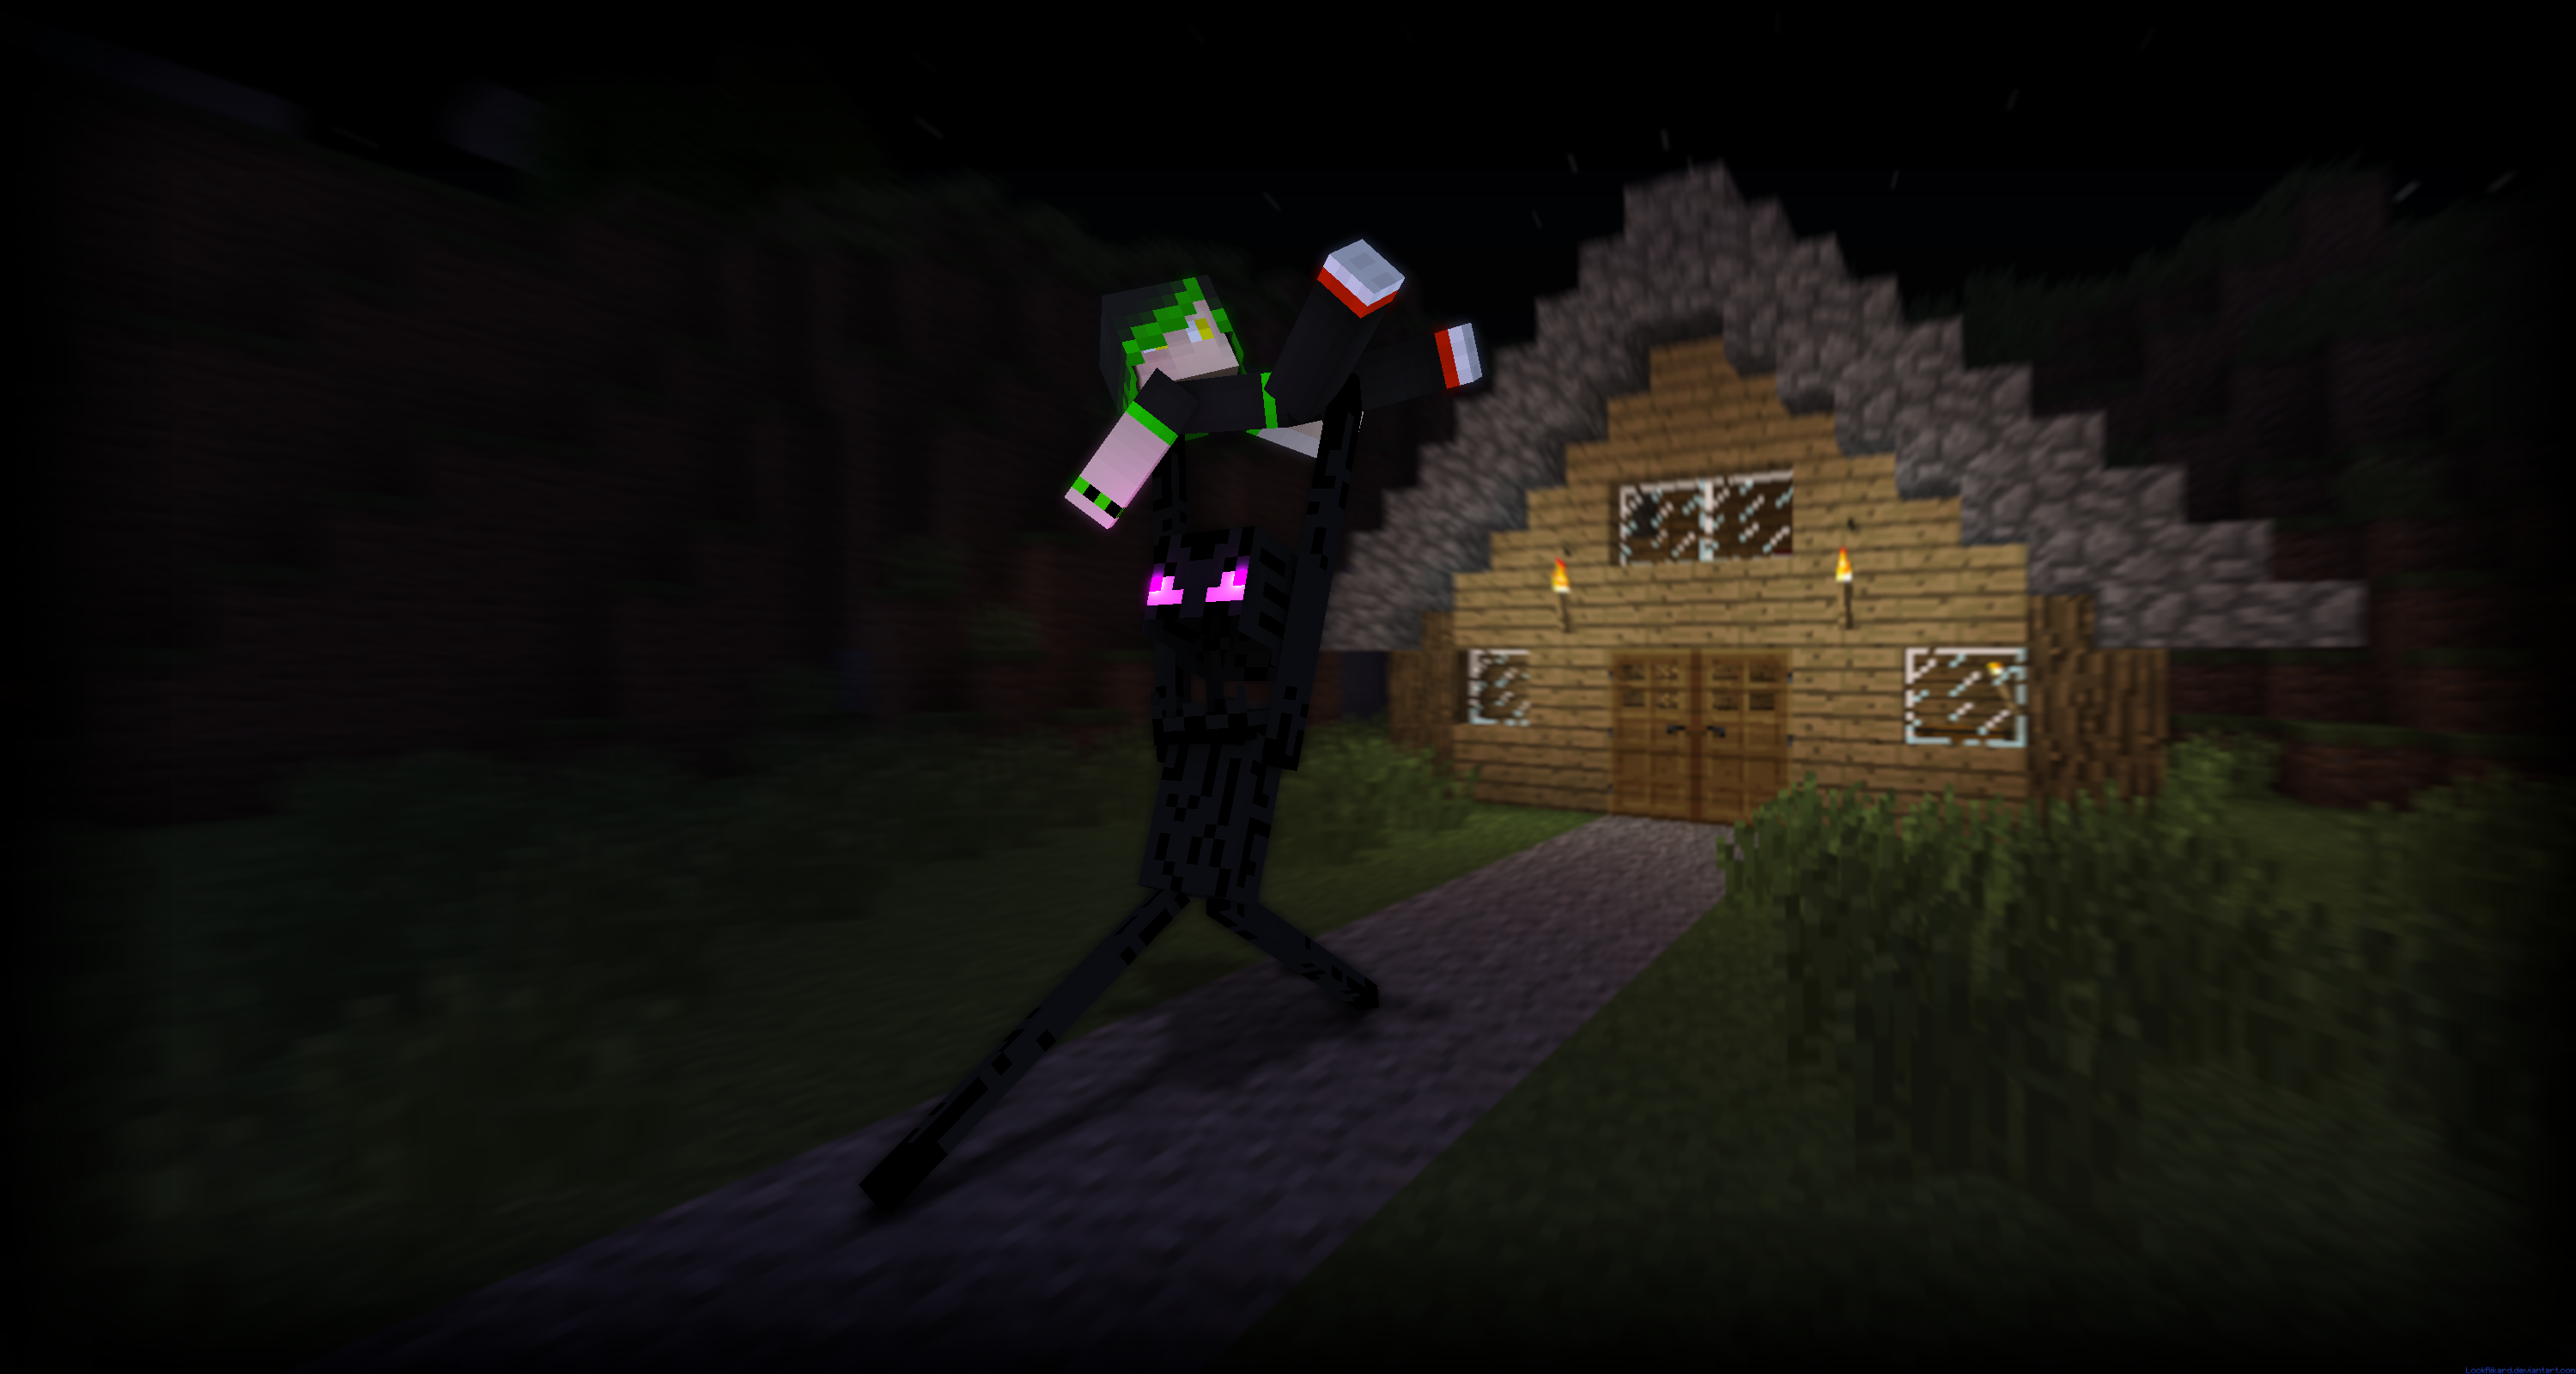 enderman minecraft wallpaper wolf - photo #28